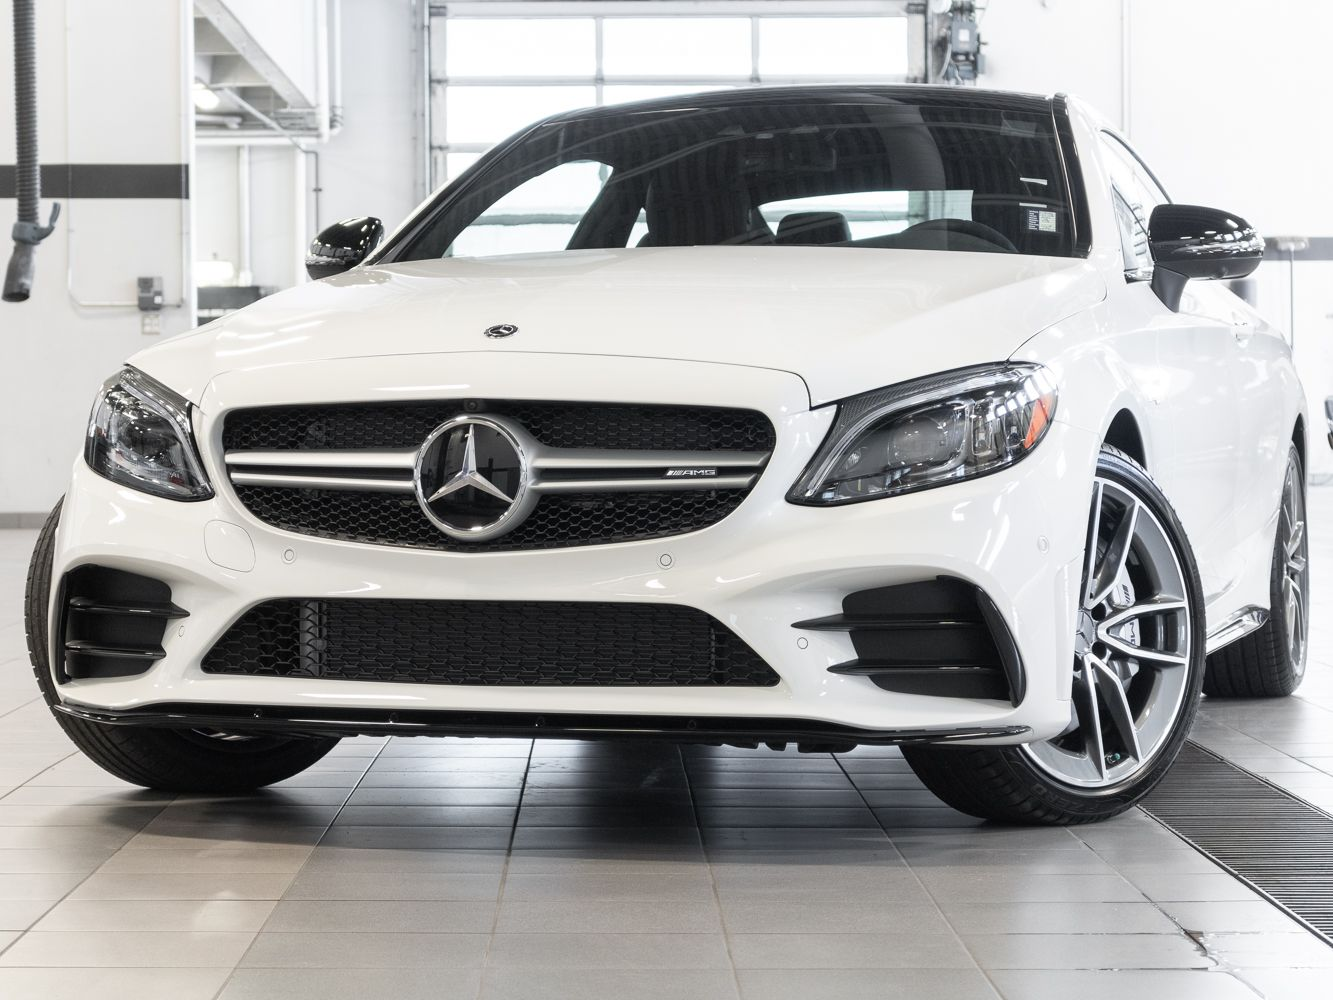 New 2020 Mercedes Benz C43 Amg 4matic Coupe 2 Door Coupe In Kelowna M20312 Kelowna Mercedes Benz